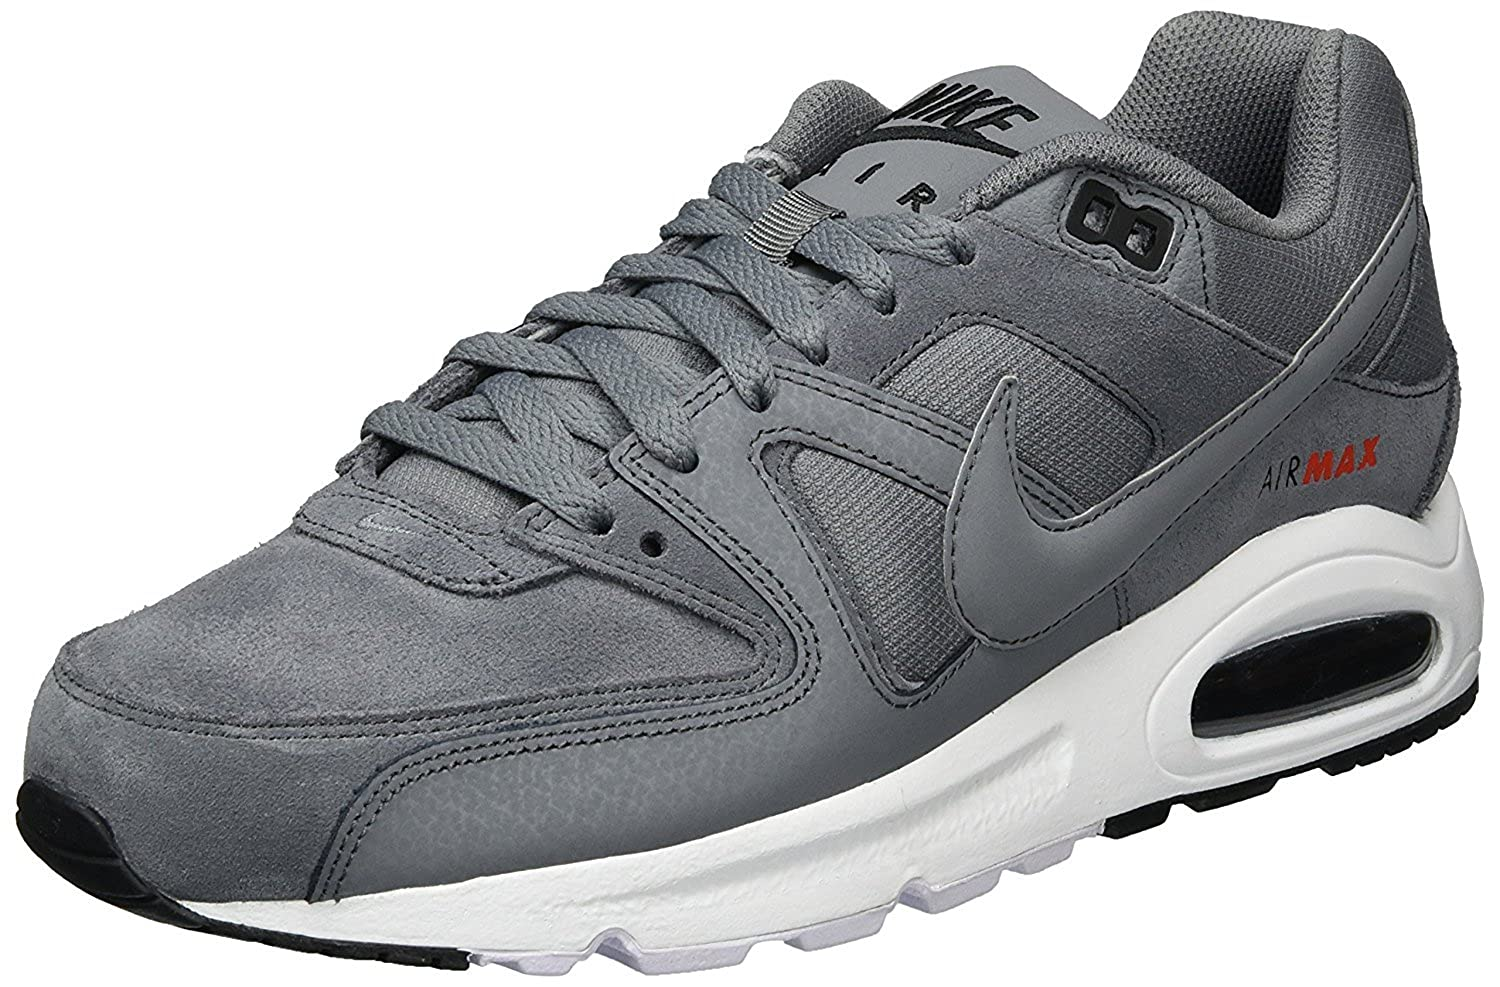 100% authentic 4ae09 a3488 Nike Air Max Command PRM, Sneakers Basses Homme